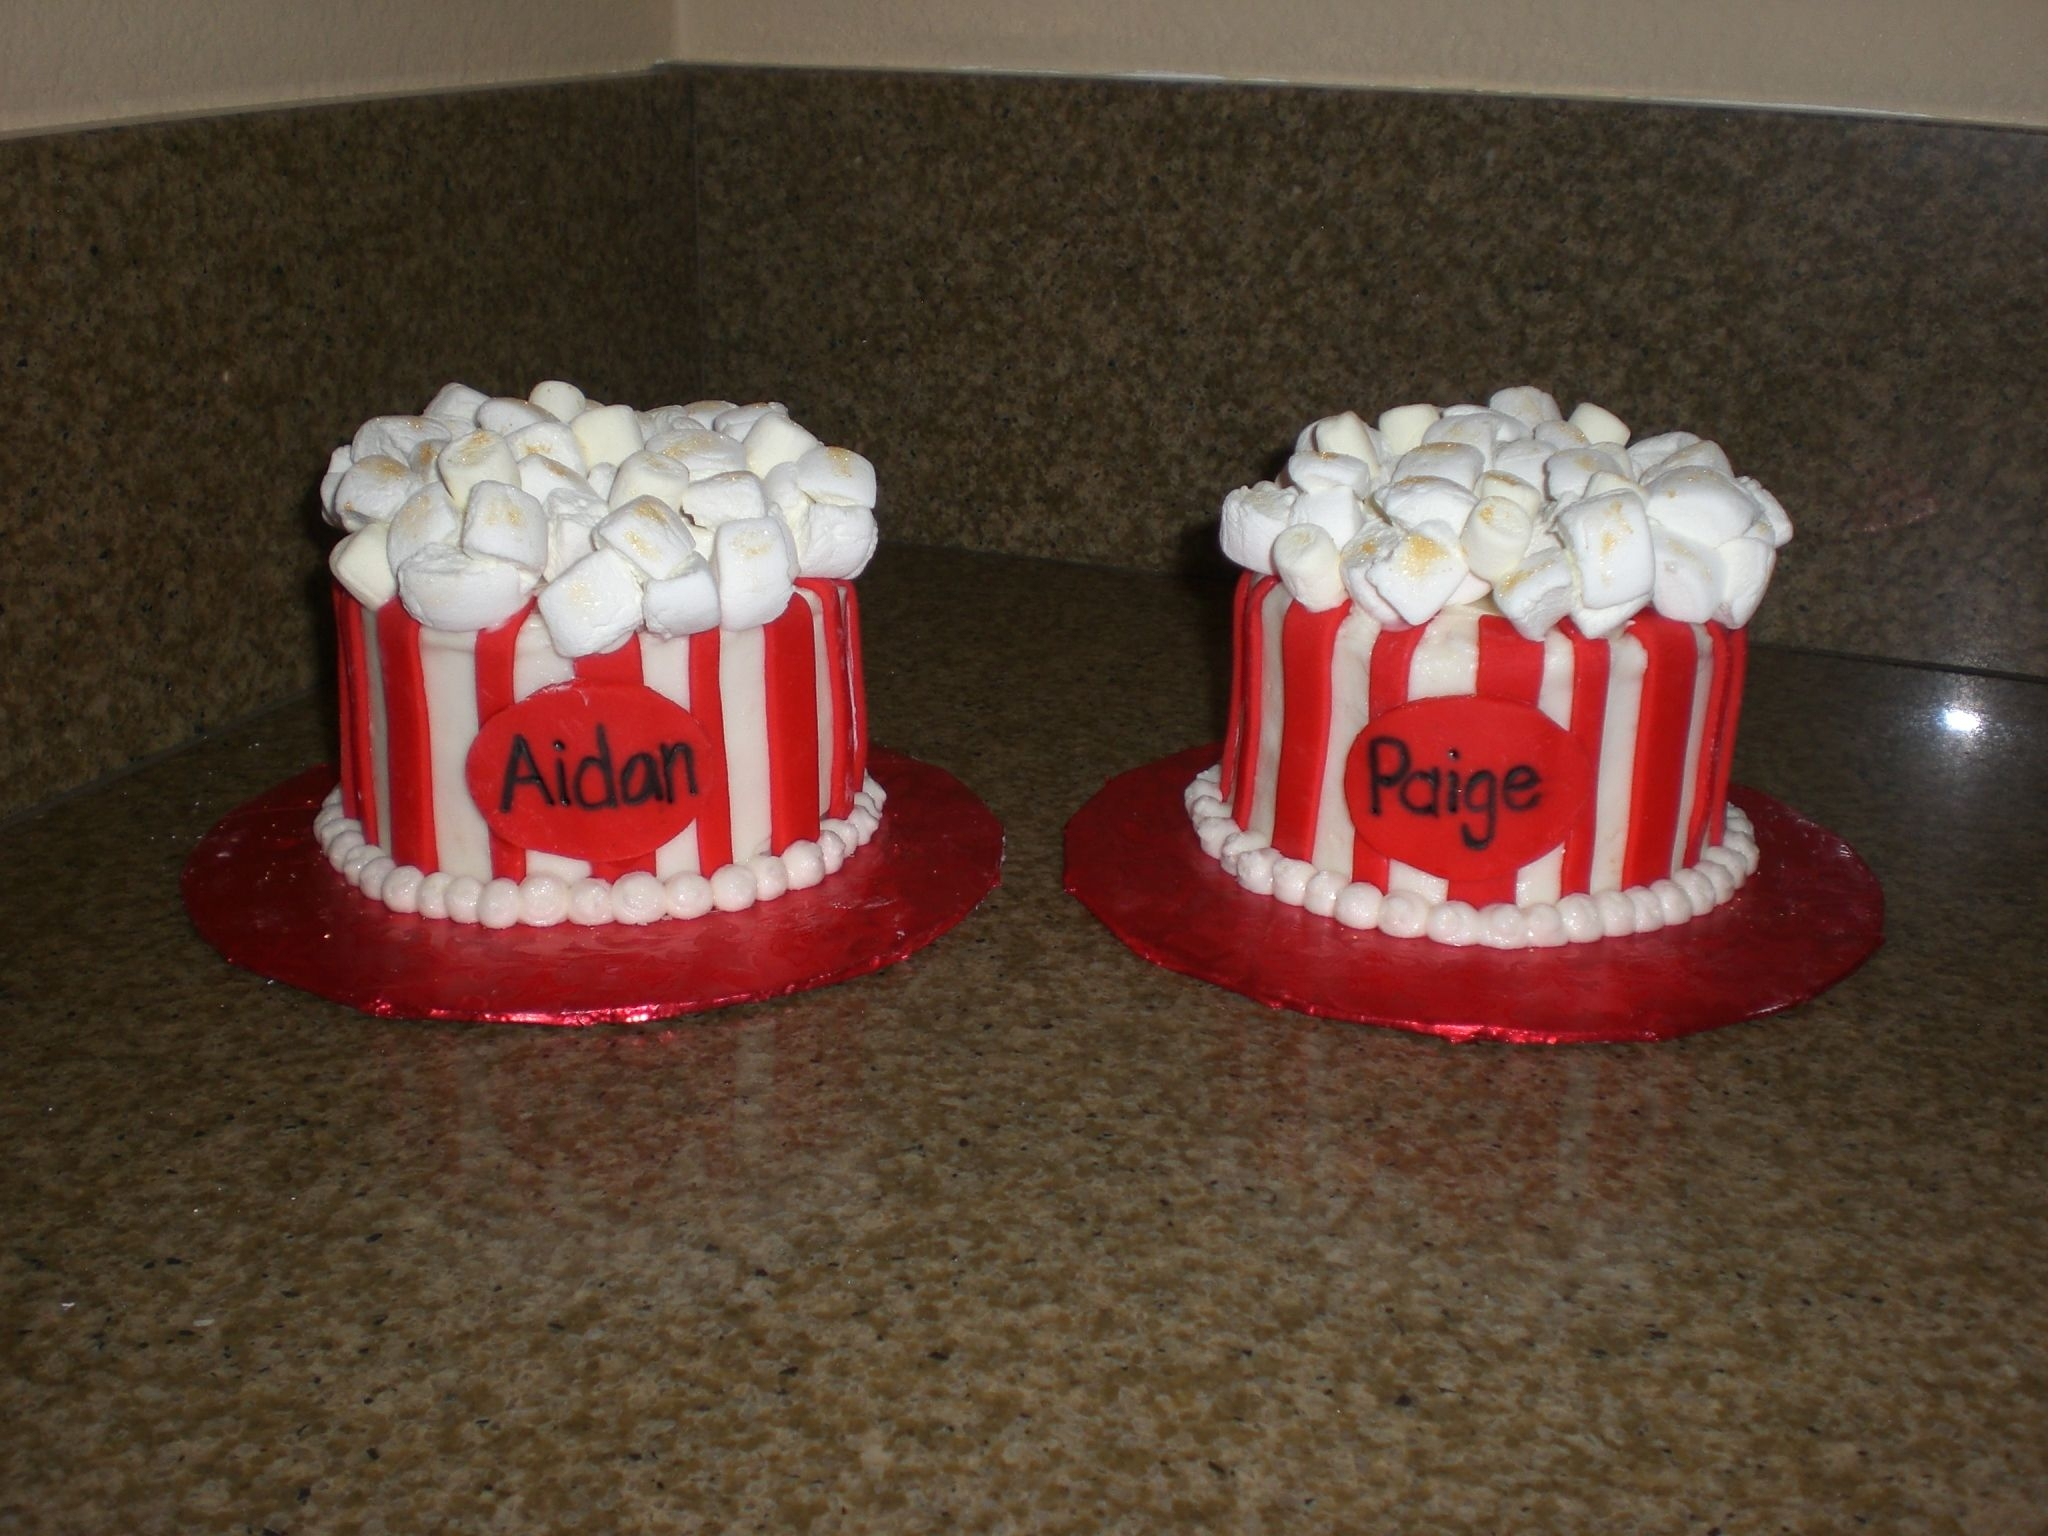 Popcorn 'bucket' Cakes Done for a friend's children's birthday party to match the other popcorn cake I made. These were the kids' individual cakes...